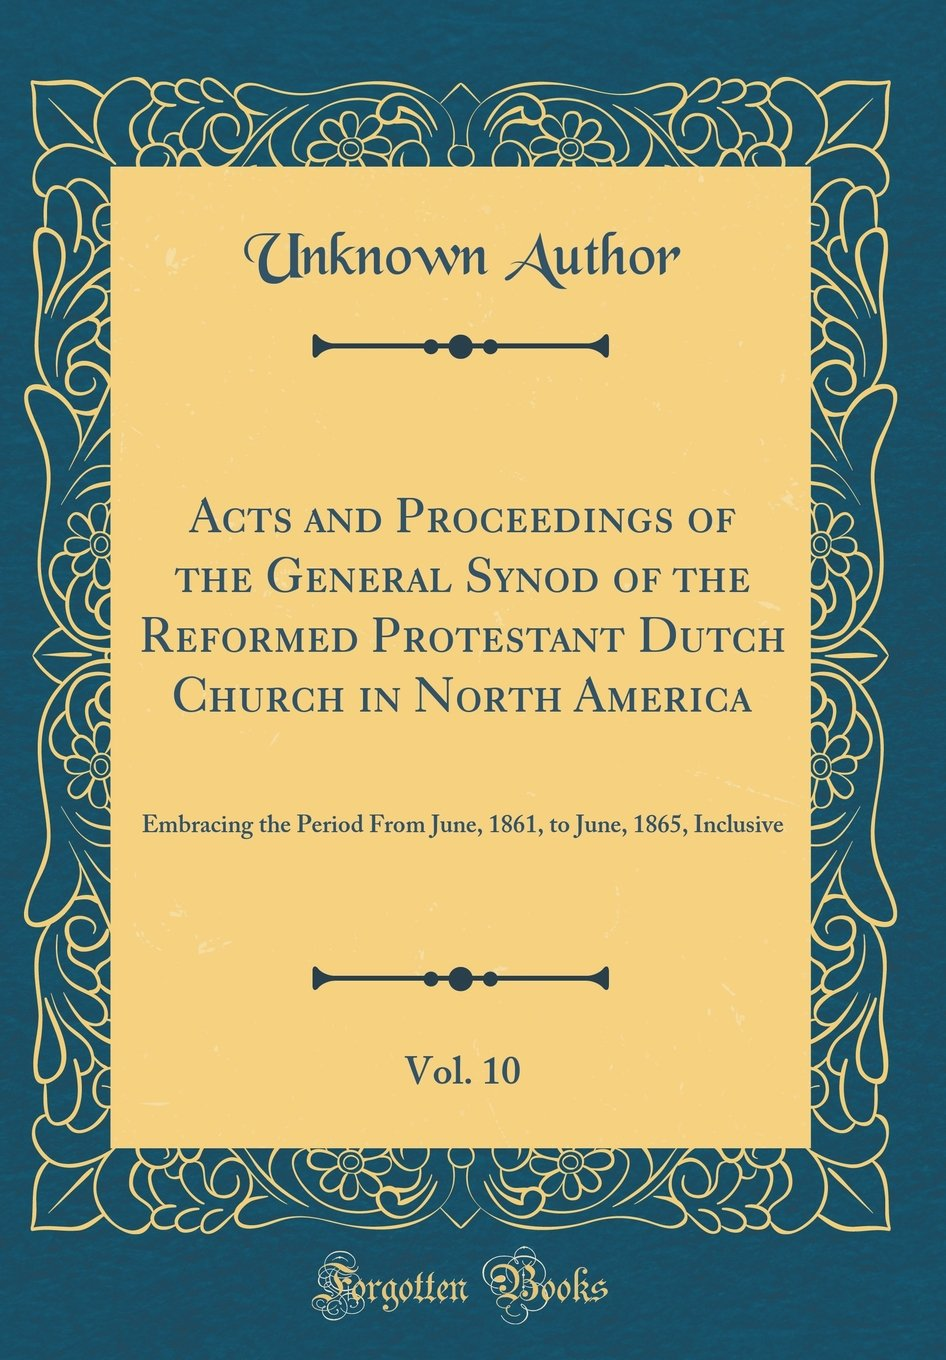 Acts and Proceedings of the General Synod of the Reformed Protestant Dutch Church in North America, Vol. 10: Embracing the Period From June, 1861, to June, 1865, Inclusive (Classic Reprint) pdf epub